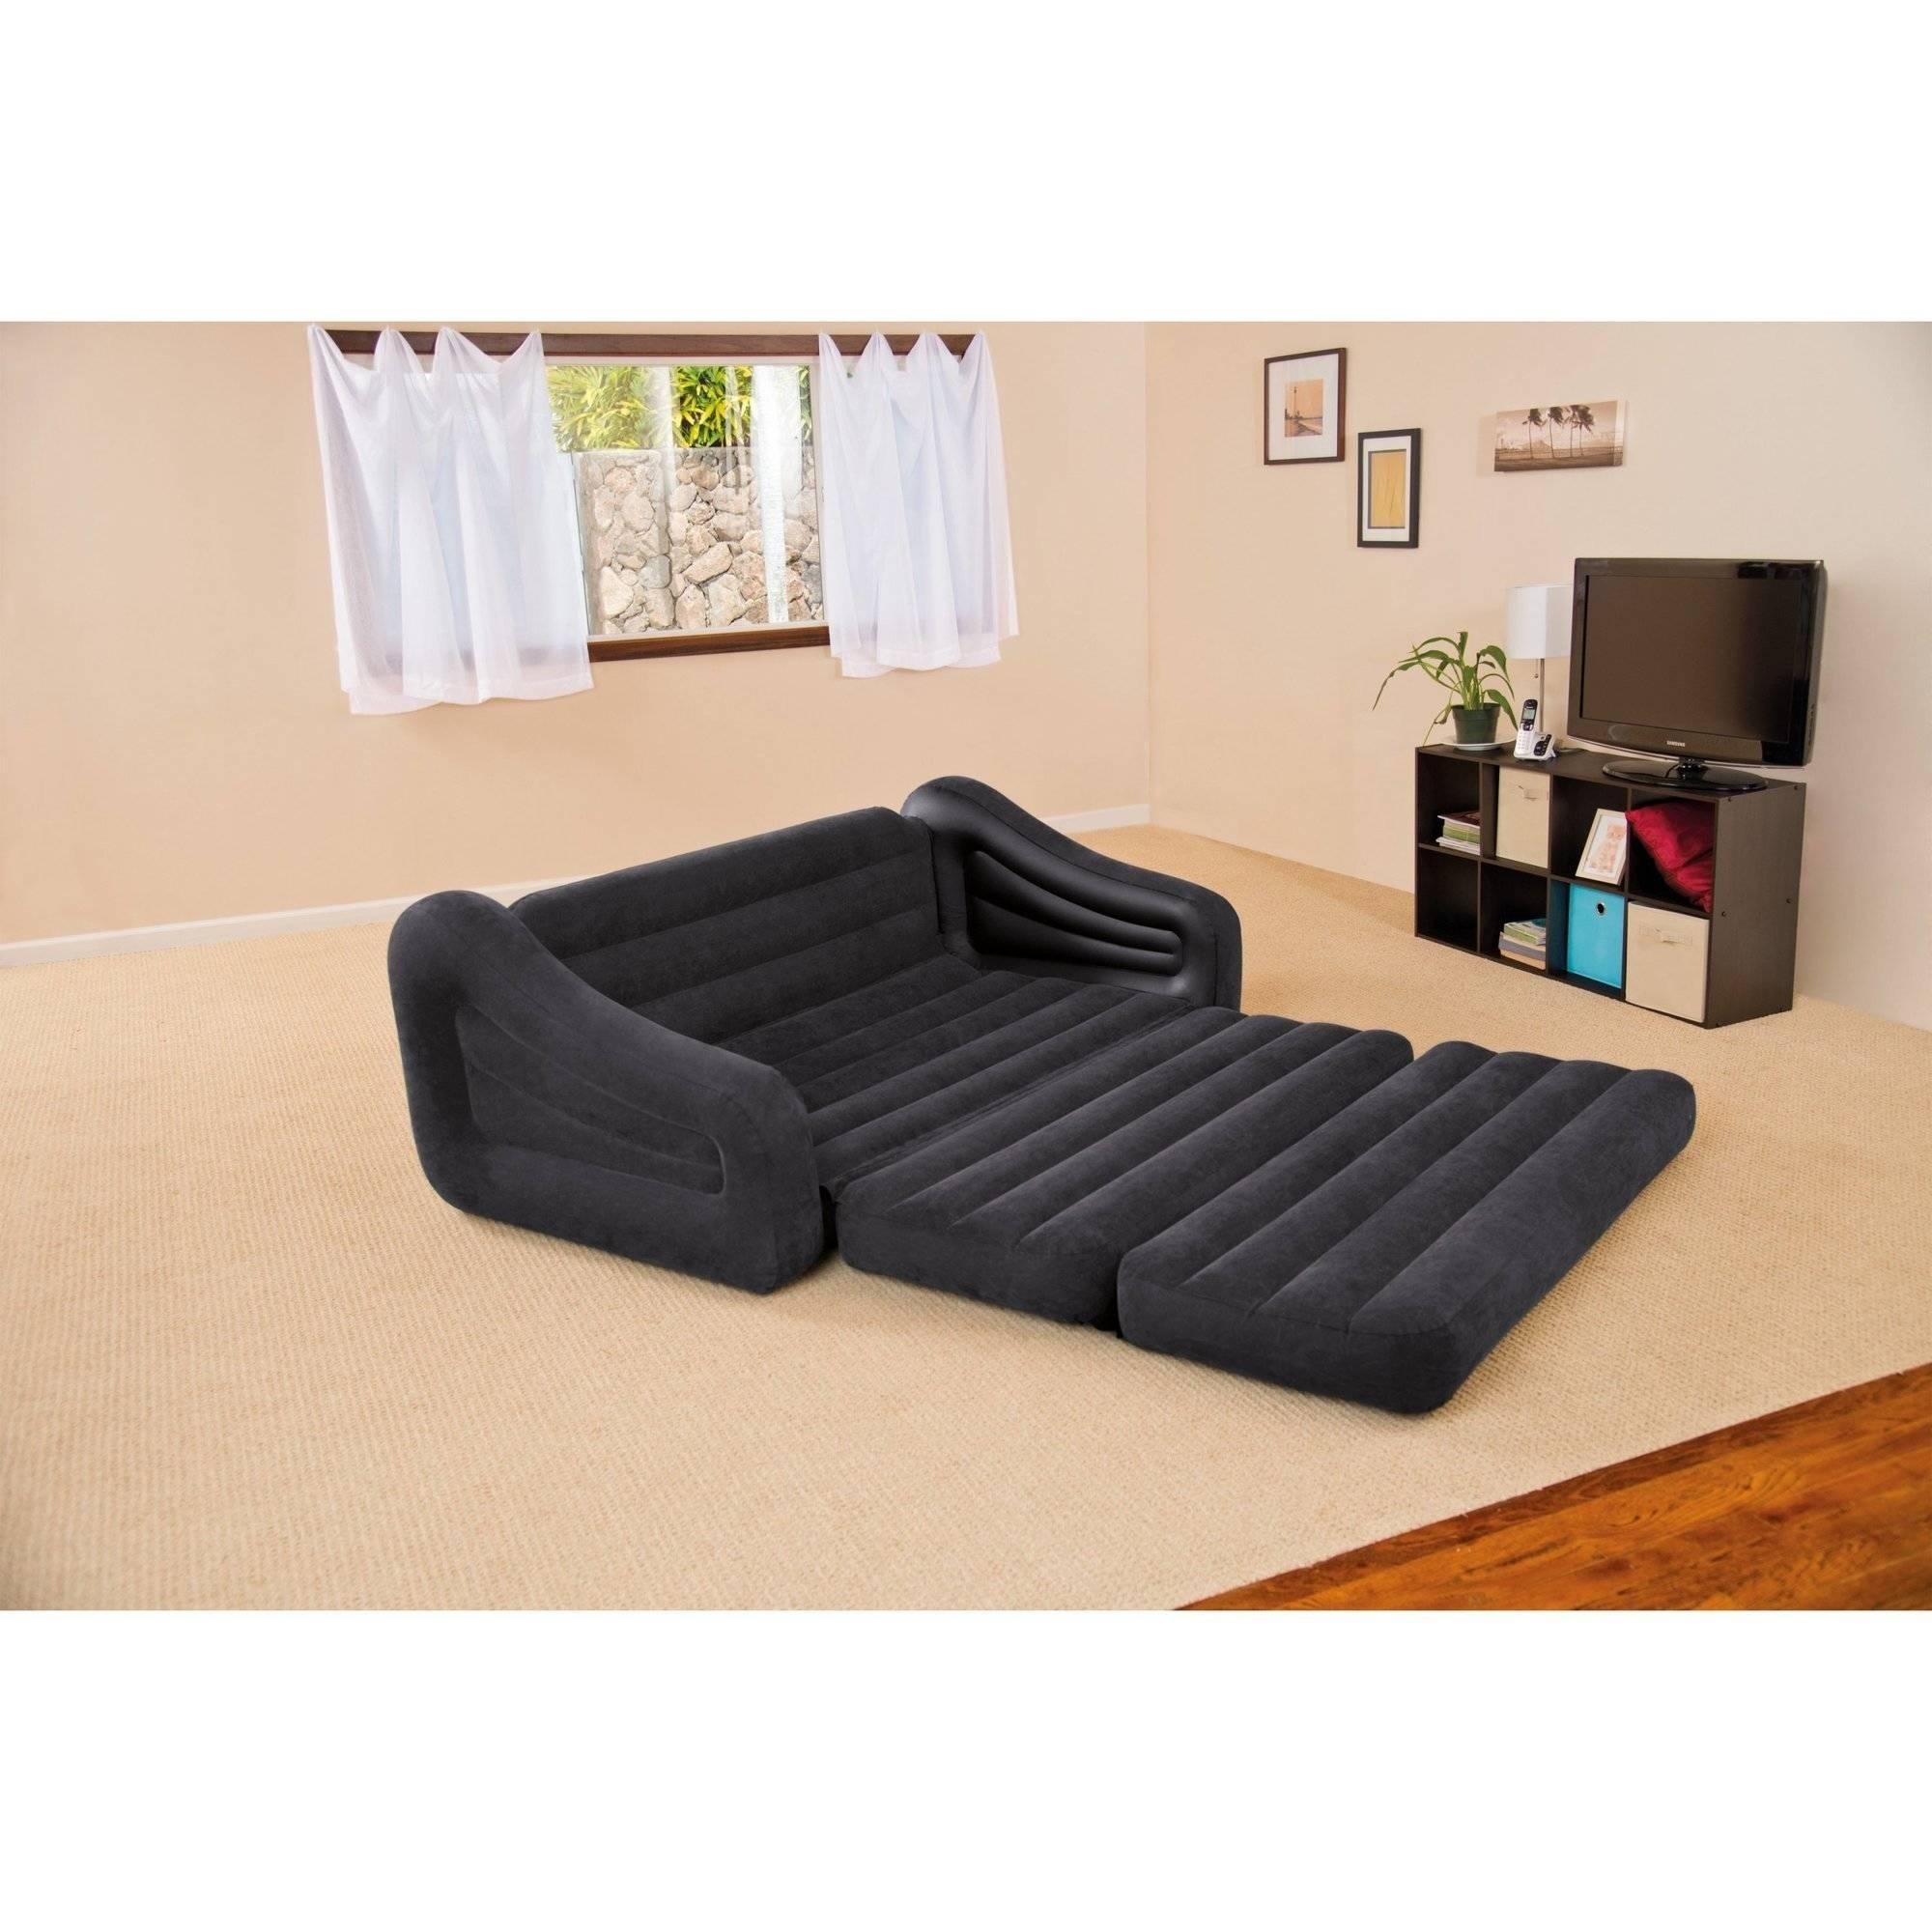 Intex Queen Inflatable Pull Out Sofa Bed – Walmart For Intex Queen Sleeper Sofas (View 6 of 20)